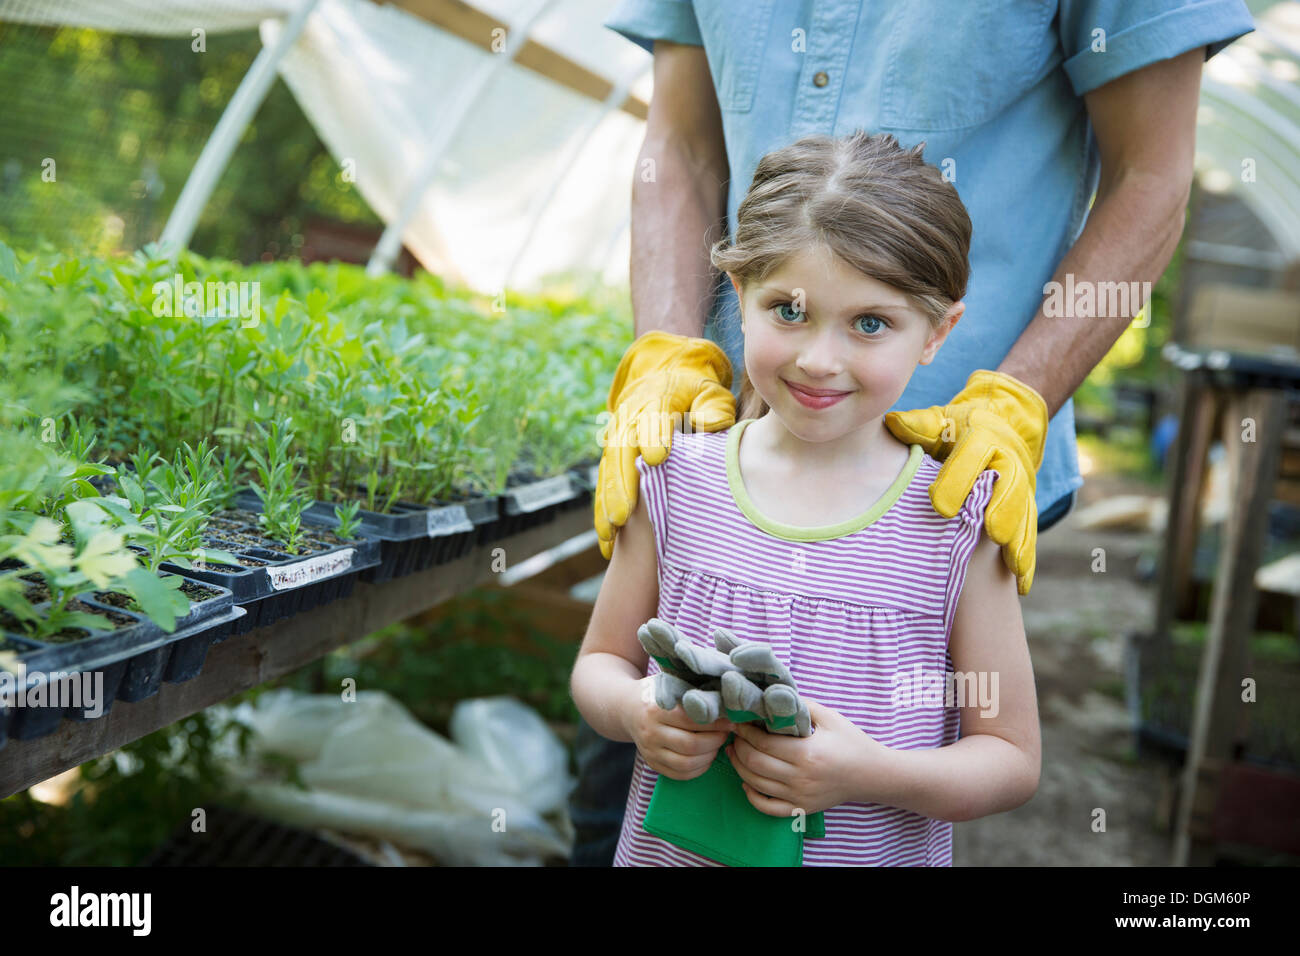 On farm Children adults working together man young child gardening gloves standing beside bench of young seedling plants in - Stock Image